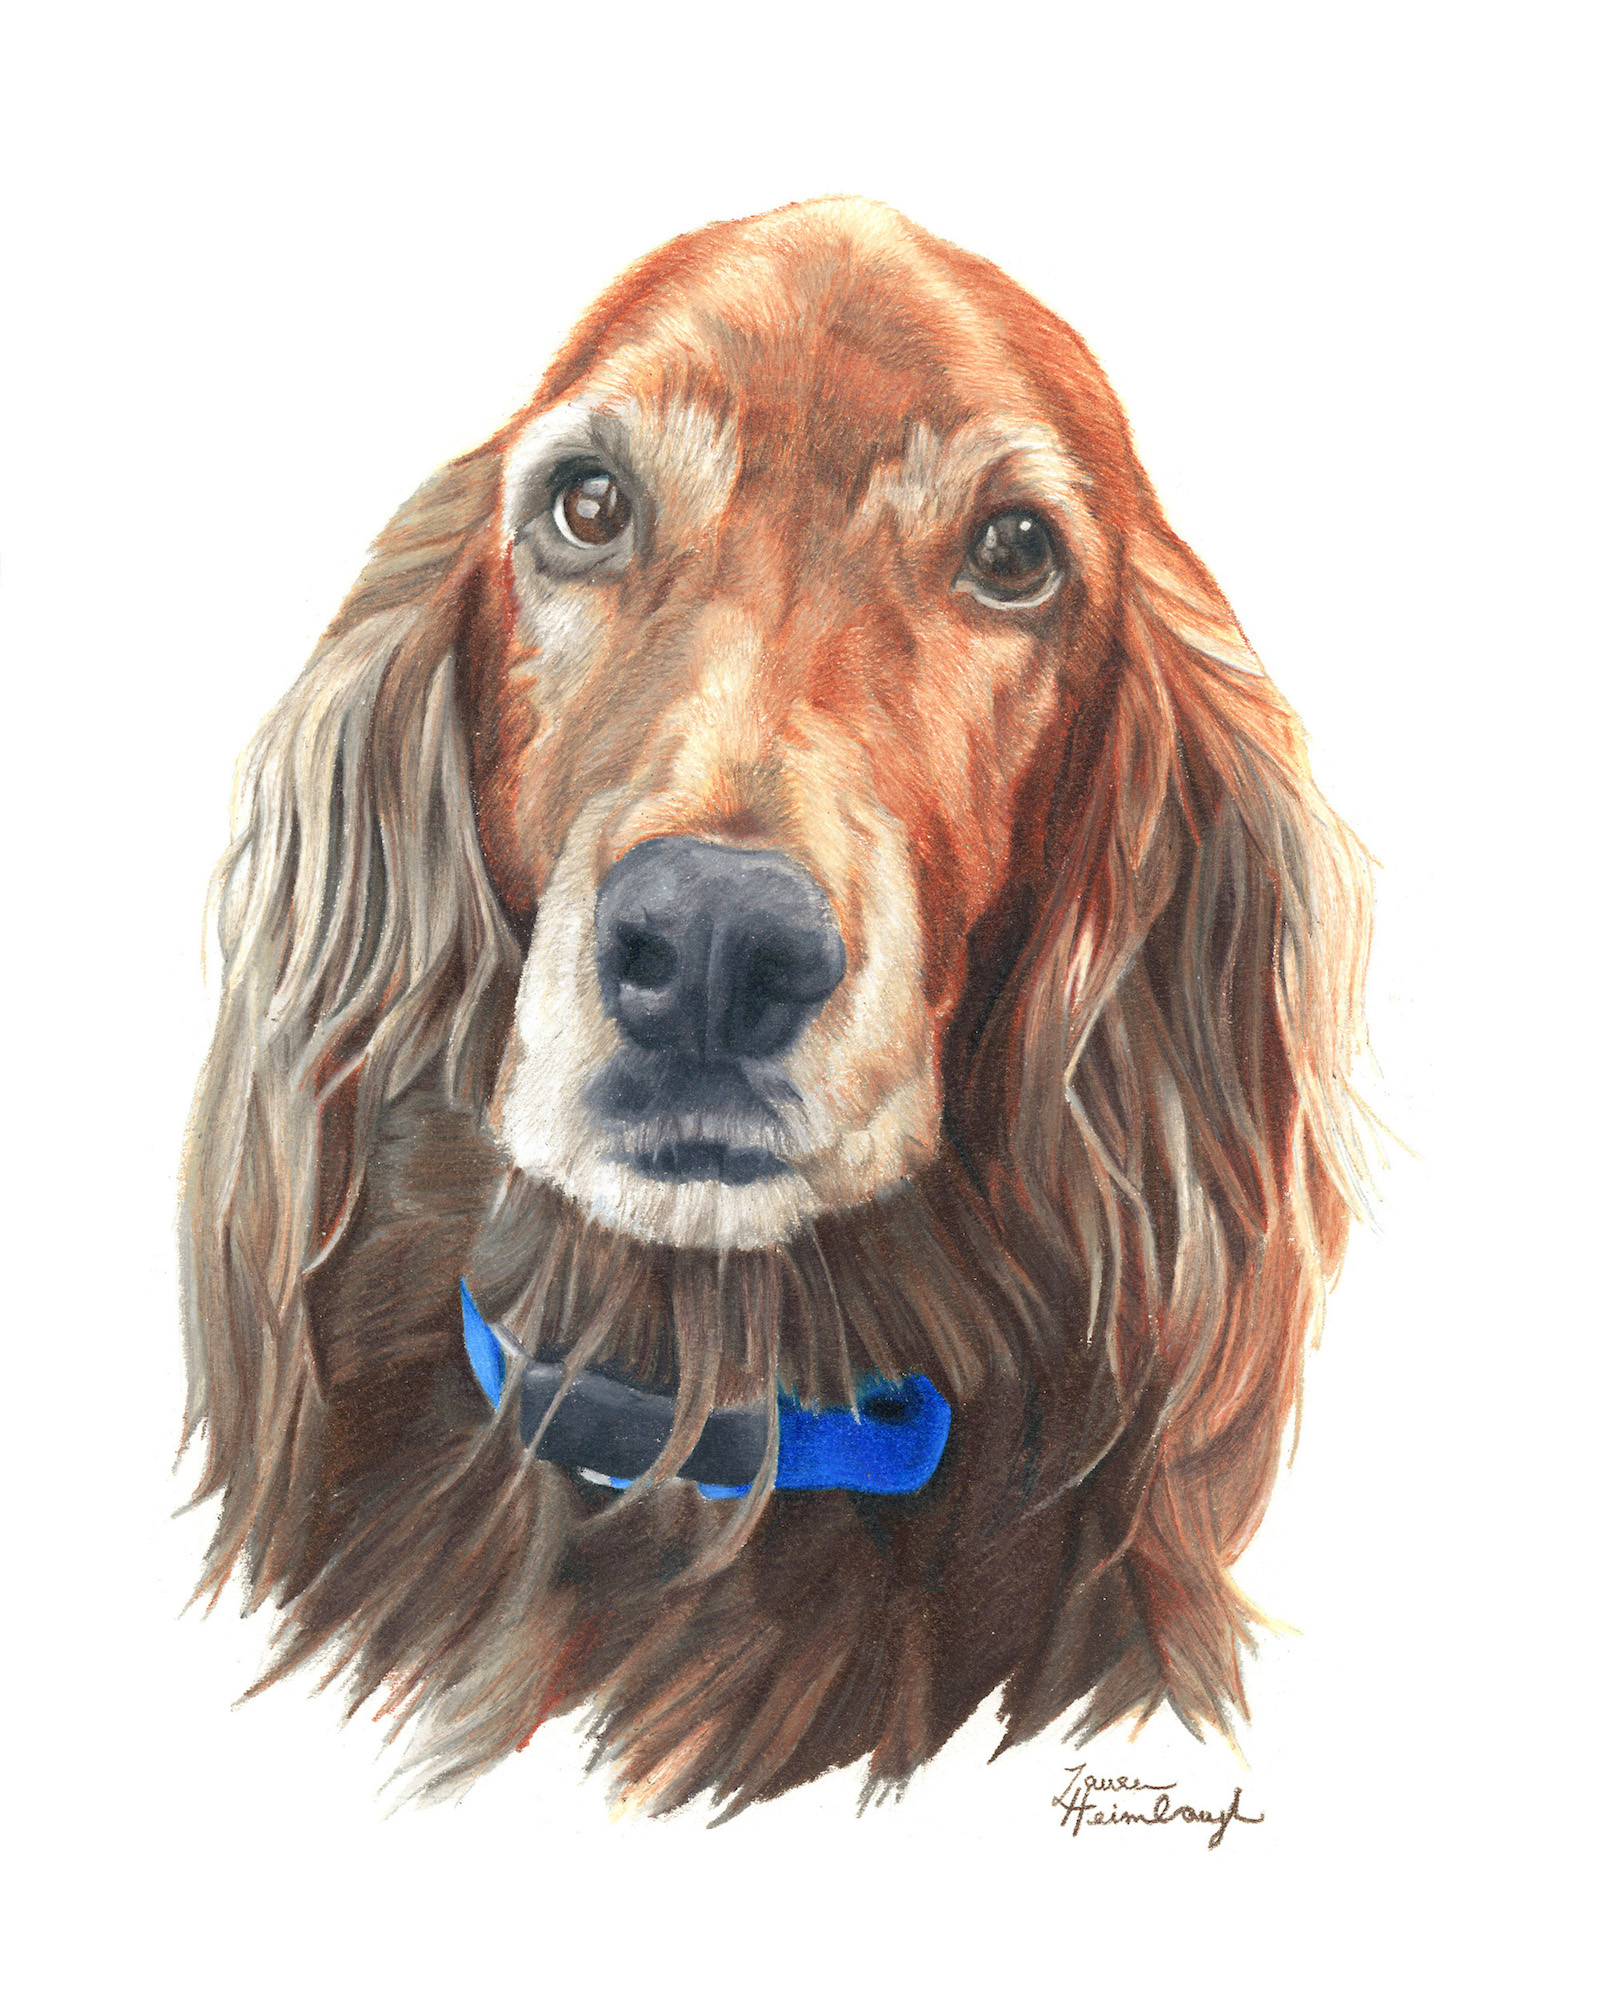 Bailey the Irish Setter (2015)